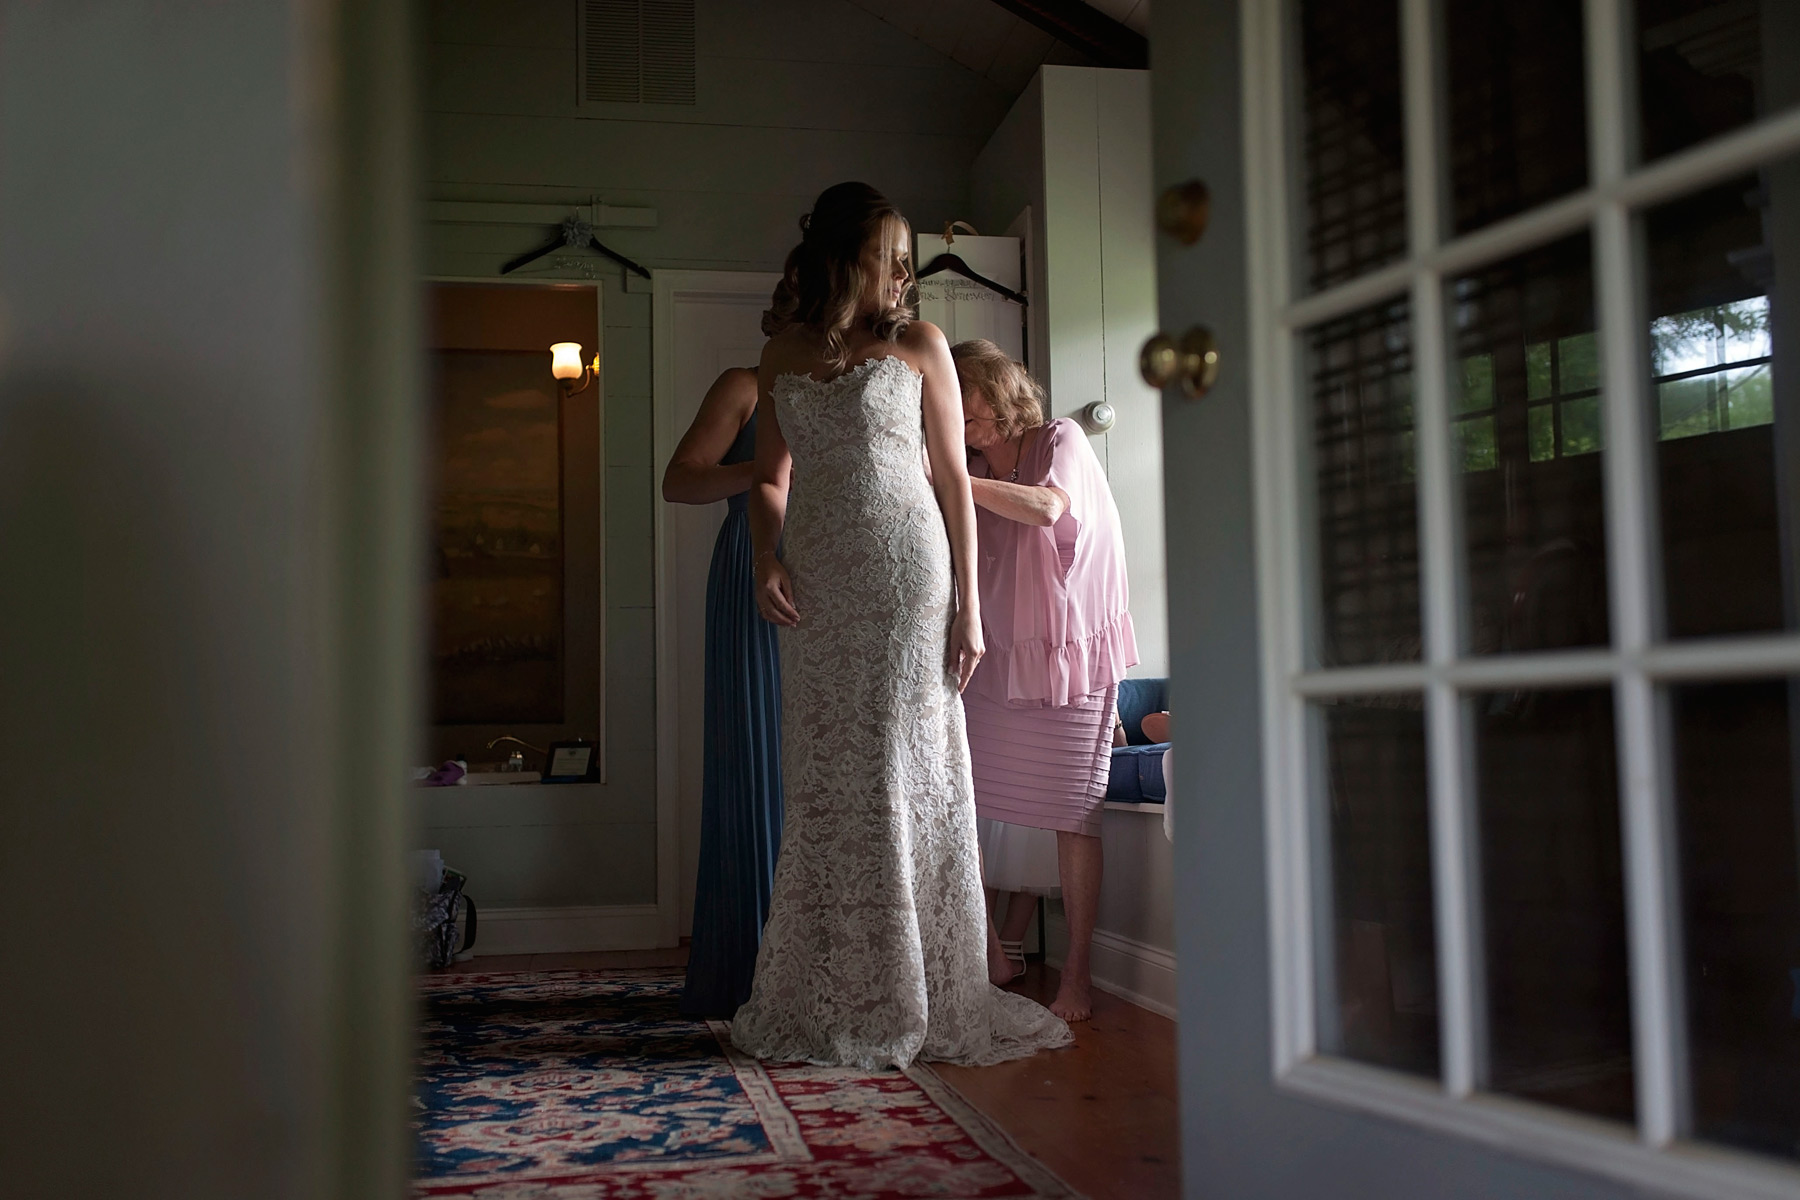 Bride gets dressed at the Woolverton Inn in Stockton, NJ